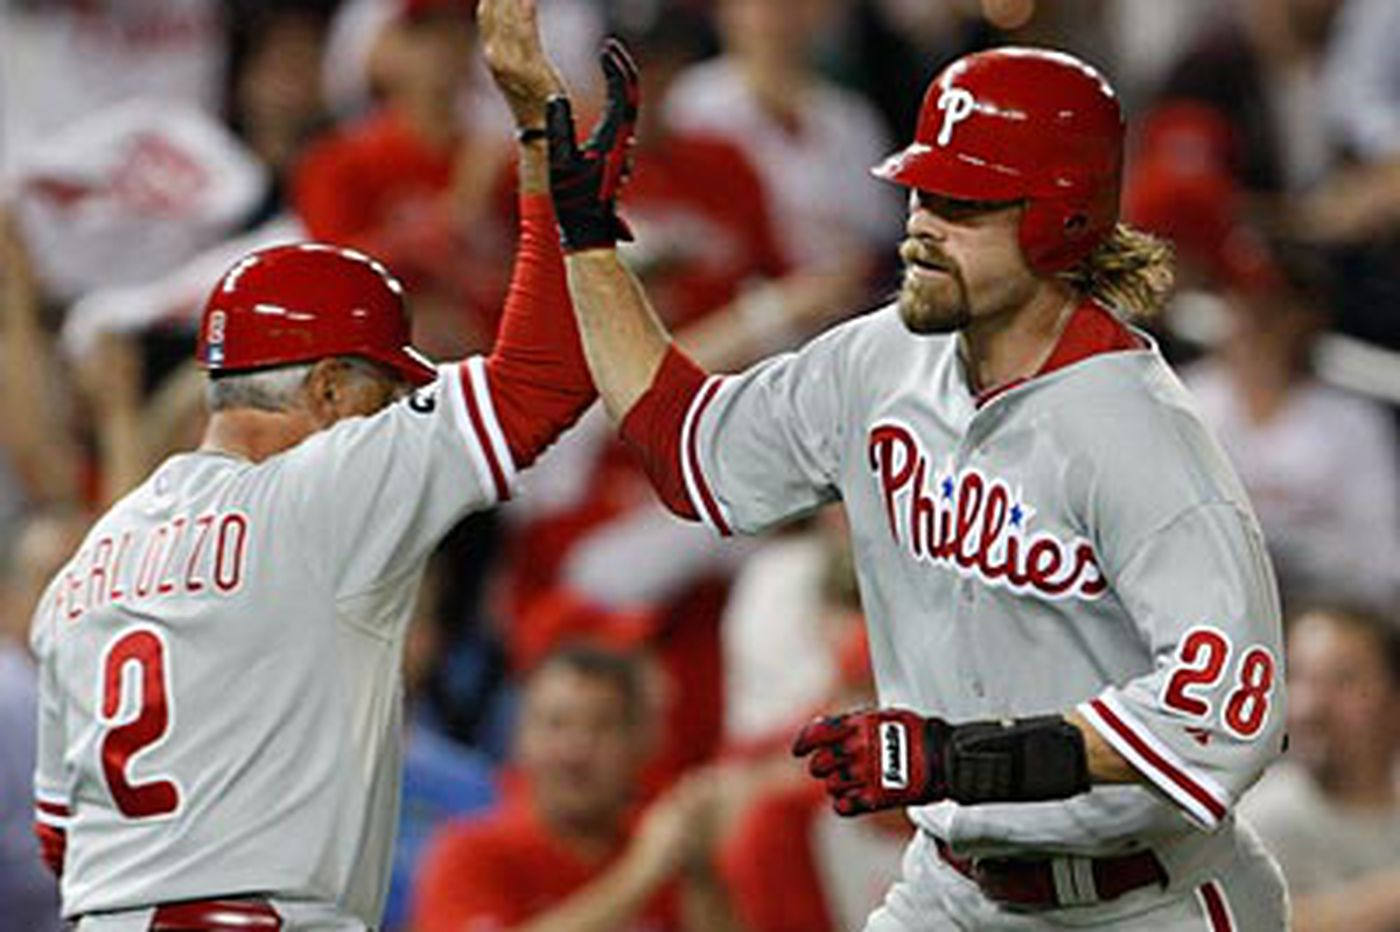 Phillies clinch fourth consecutive NL East title with 8-0 win at Washington